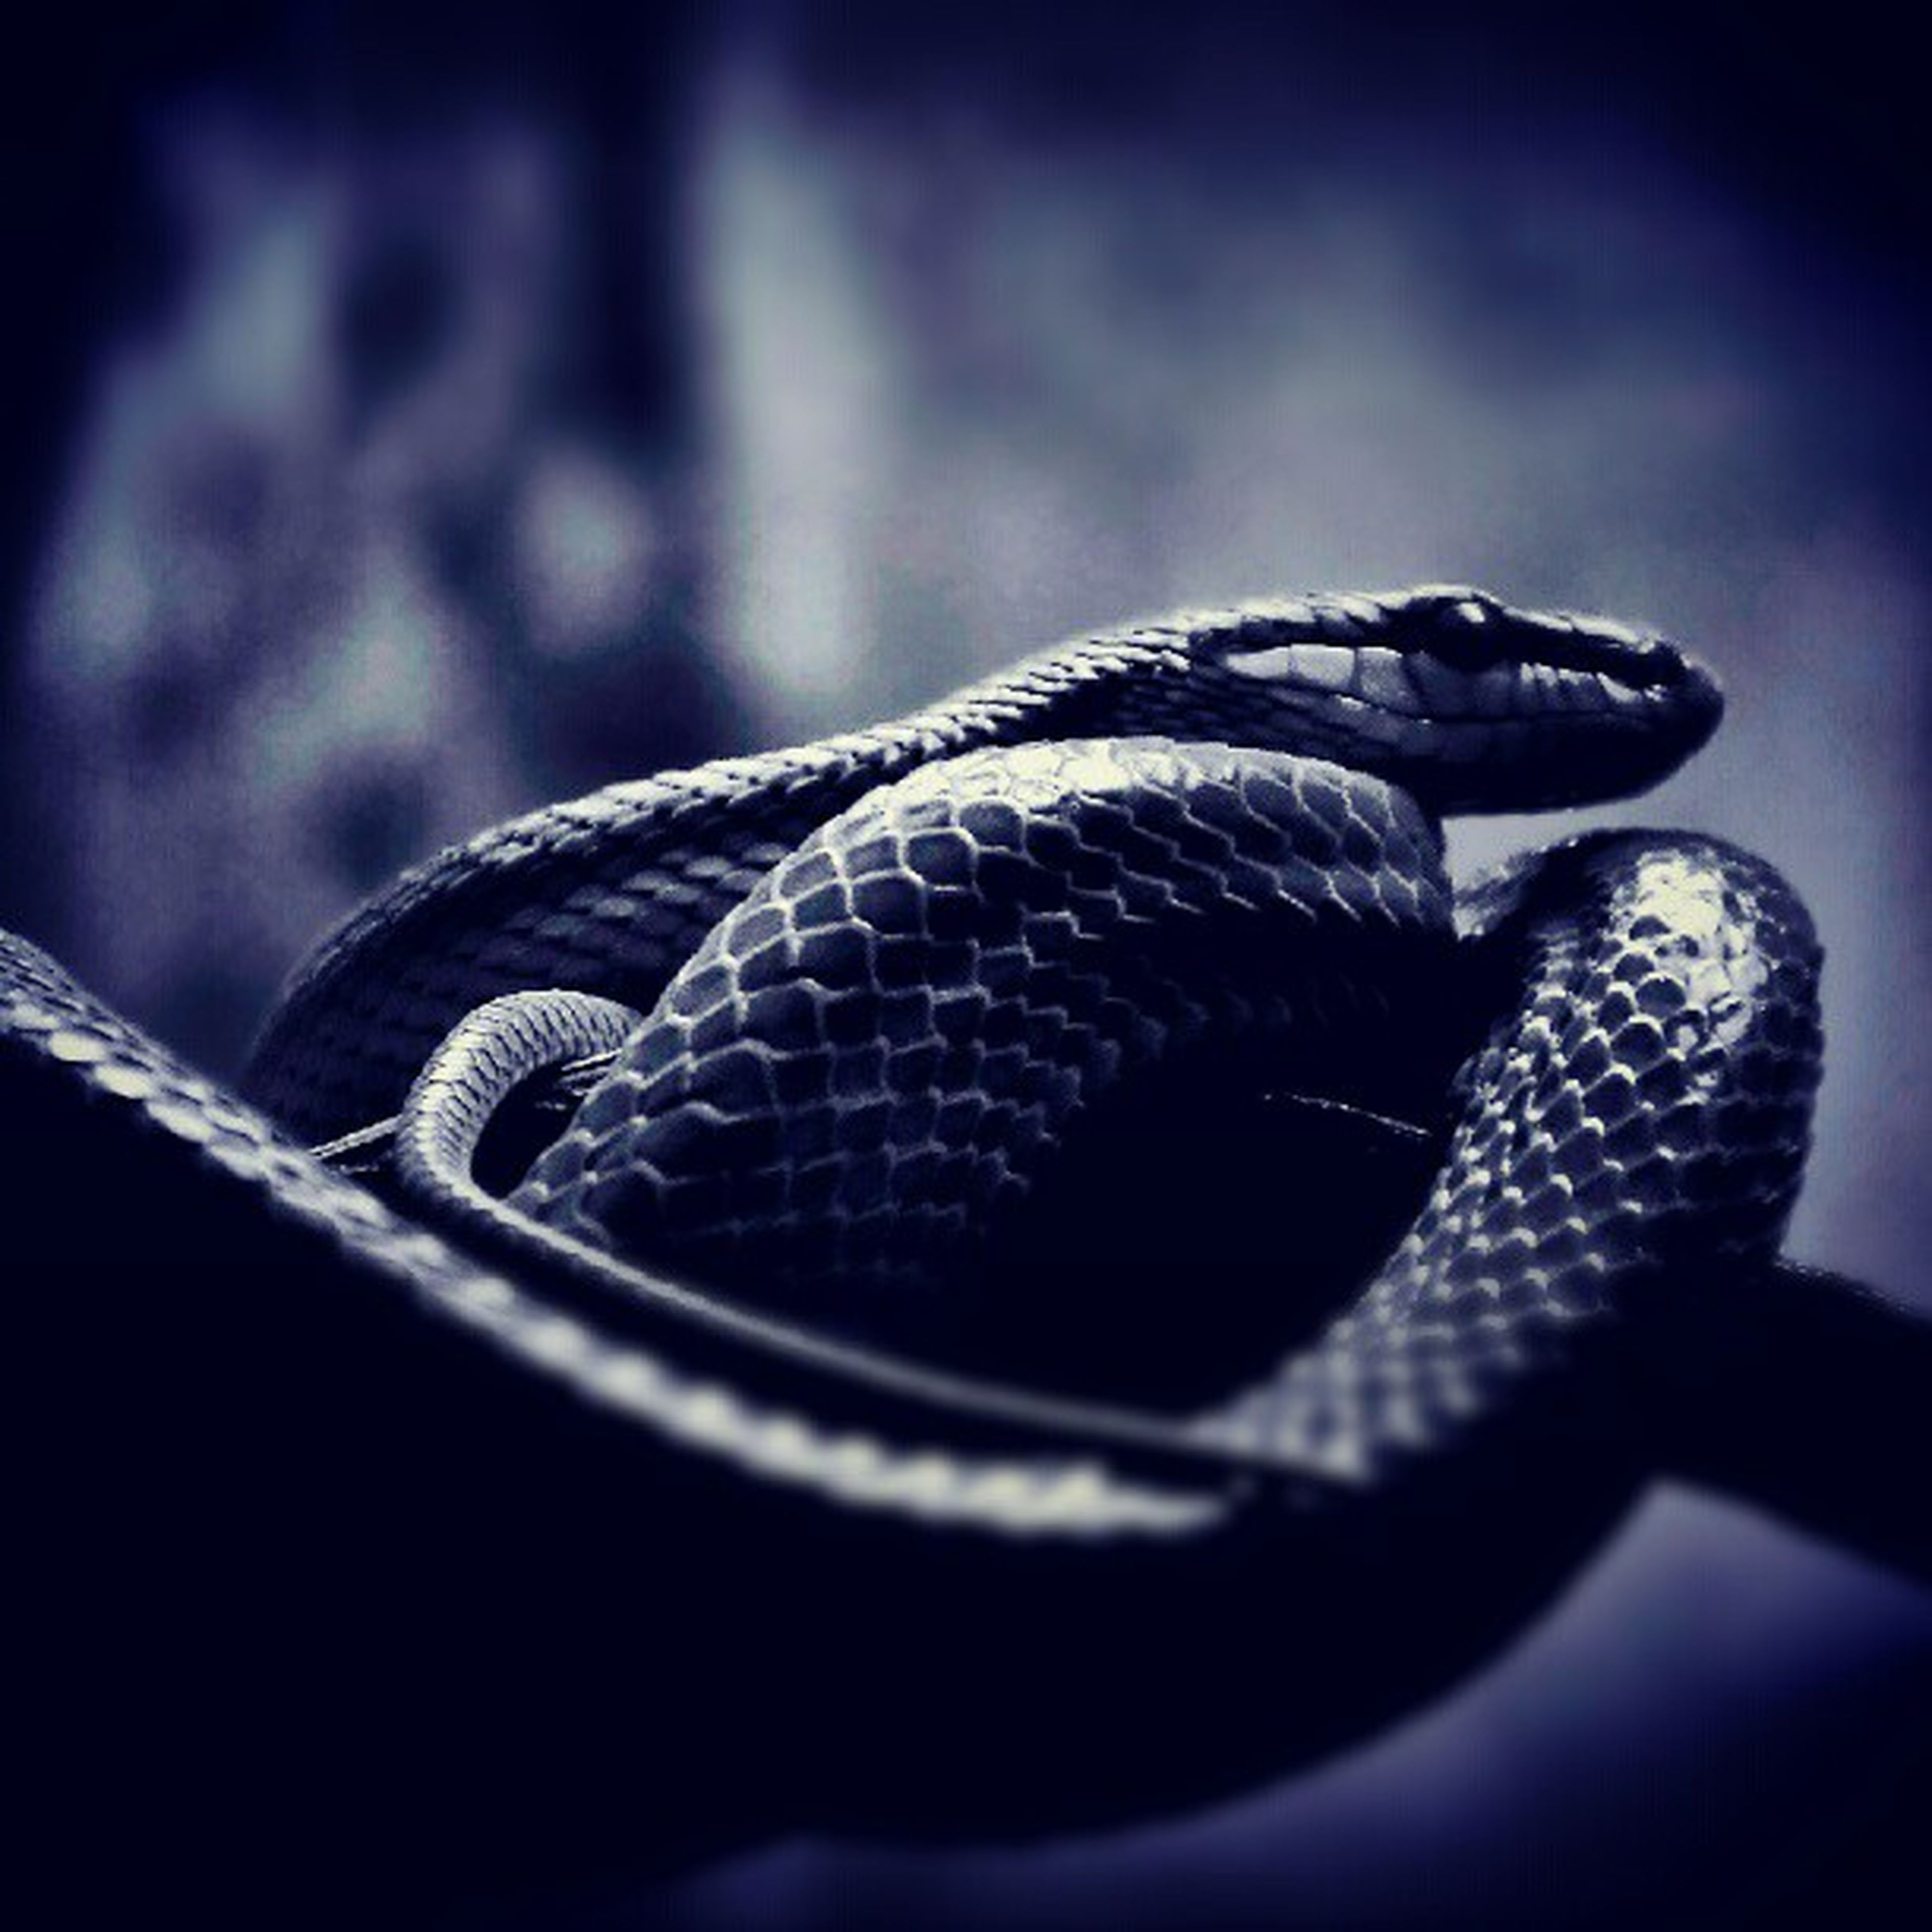 one animal, animal themes, close-up, focus on foreground, animals in the wild, wildlife, reptile, selective focus, animal body part, no people, outdoors, metal, animal head, day, nature, rope, snake, sunlight, side view, part of